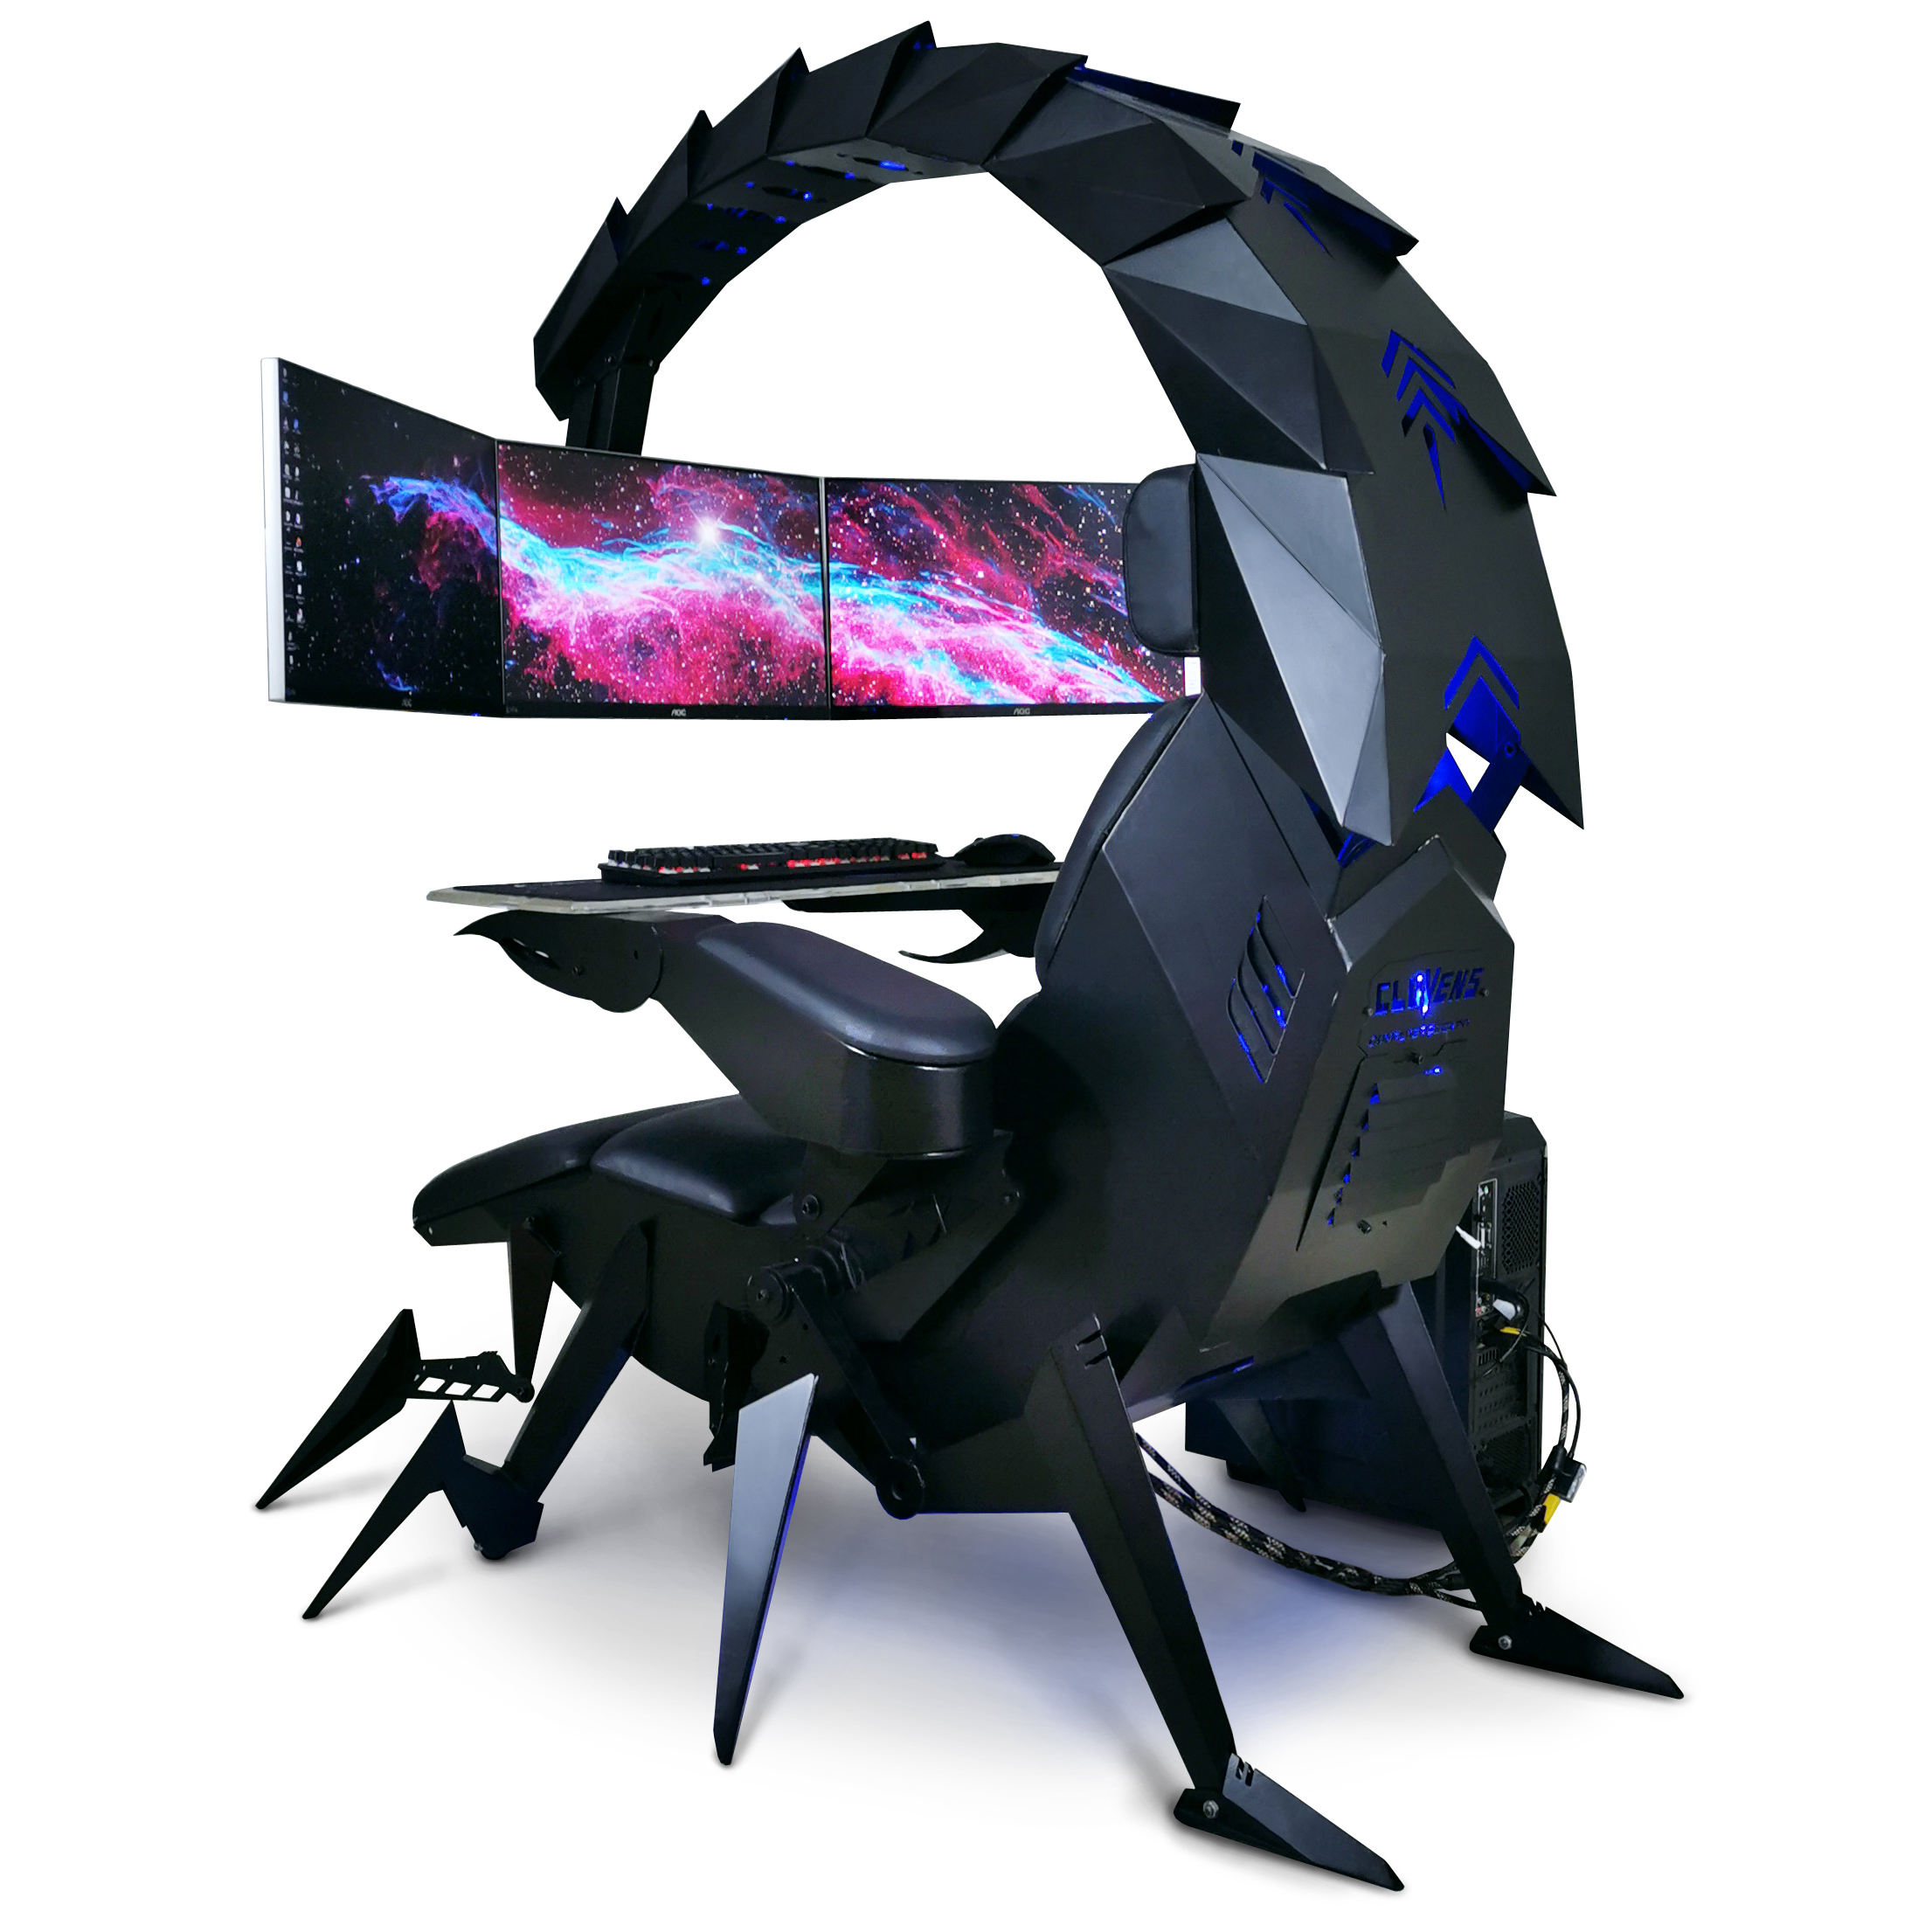 Hot selling zero gravity Tilting PC gaming office cockpit fully automatic recline for 3-5 monitors IW-SK scorpion chair